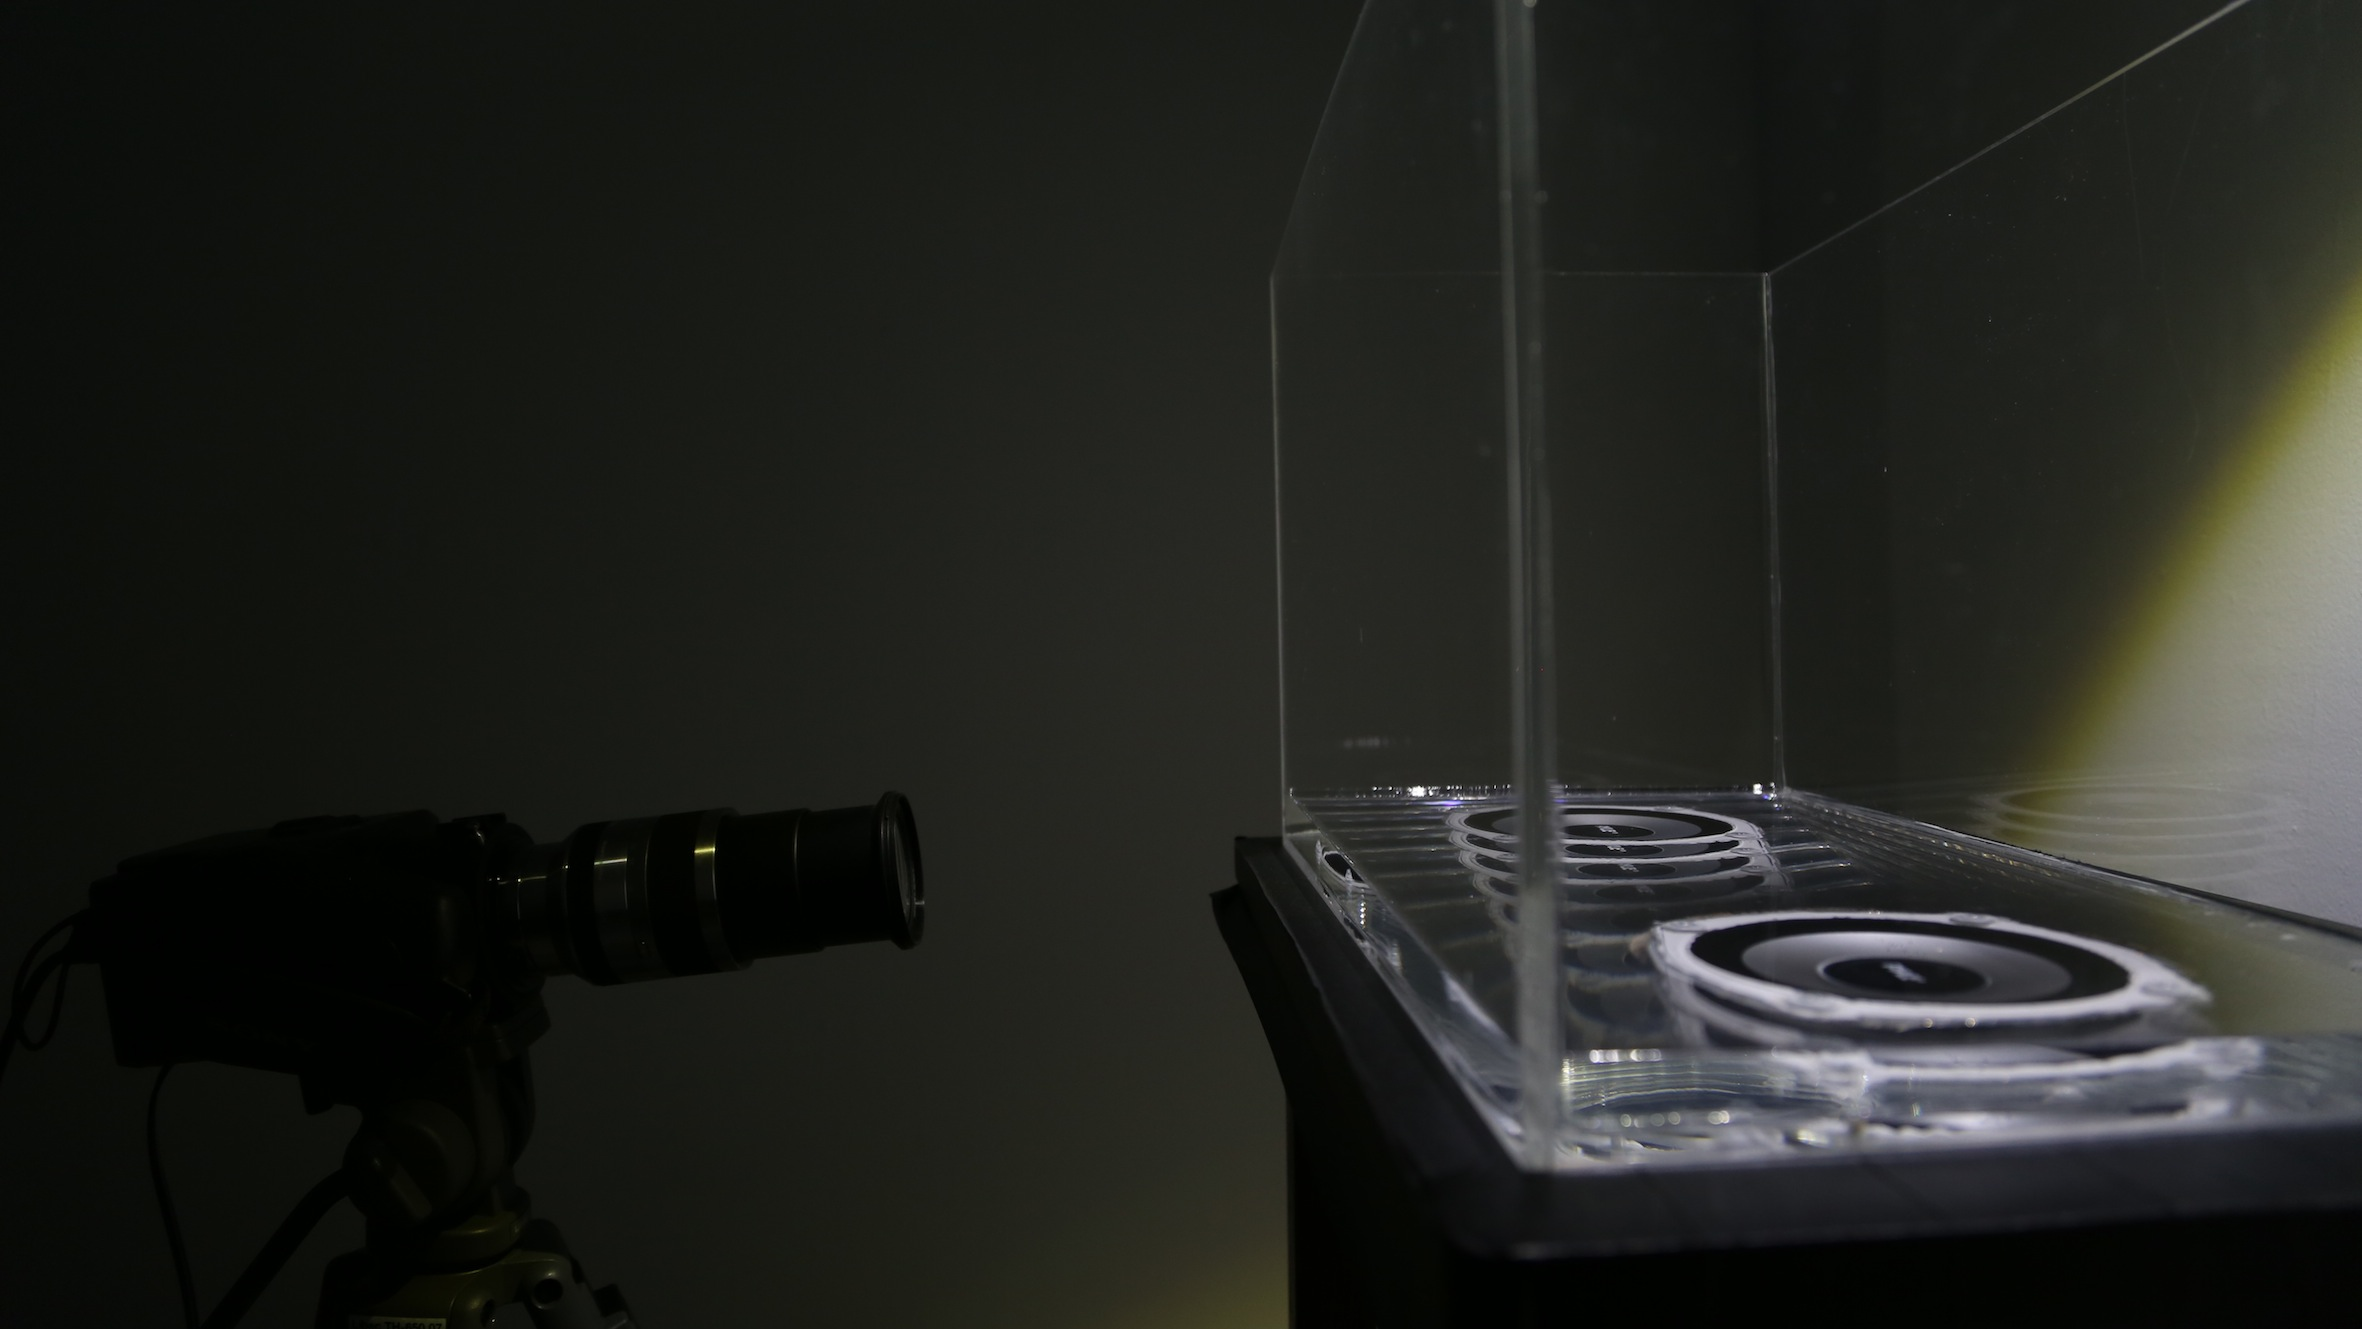 The Invention of Landscape, 2013. Mixed media with infrasound, signal generator, amplifier, waterproof speakers, water, light, large-sensor camera, live projection. Photo: B.Hagari